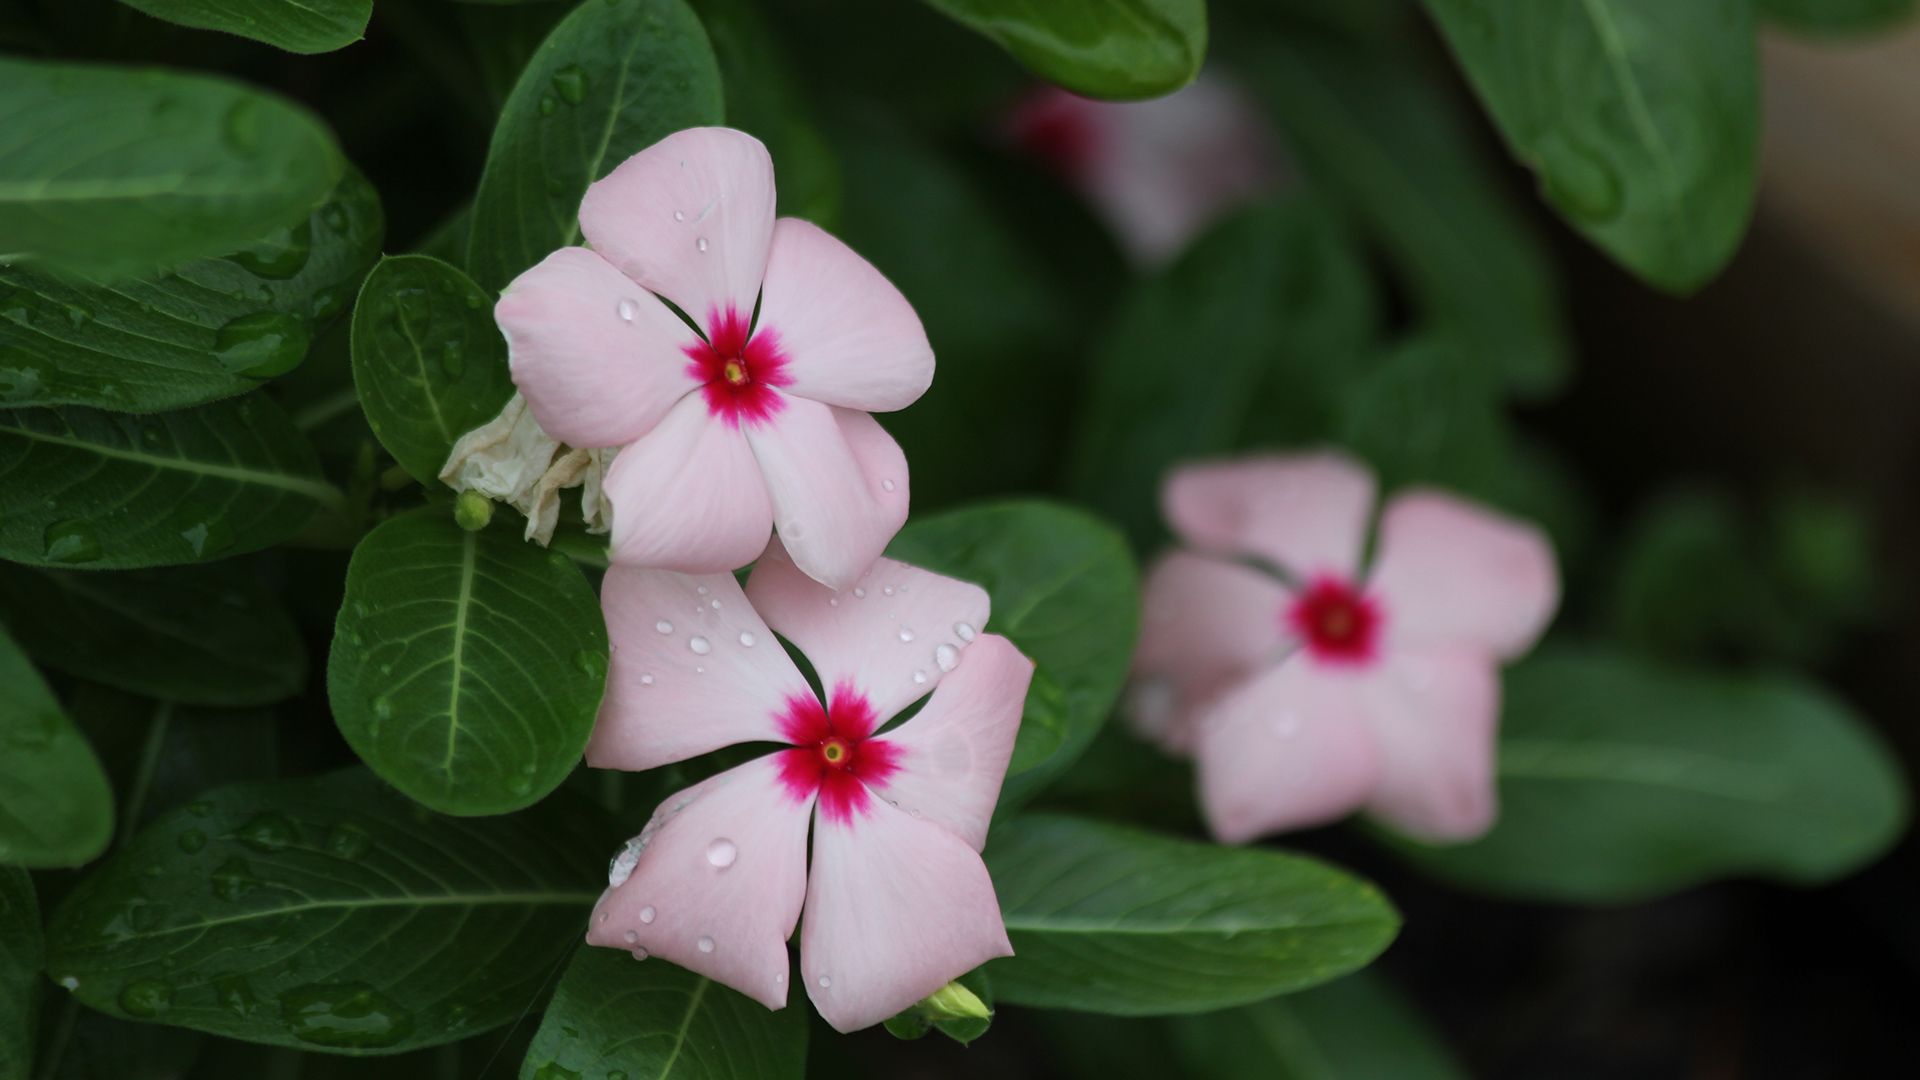 Three pink impatiens with red centers.